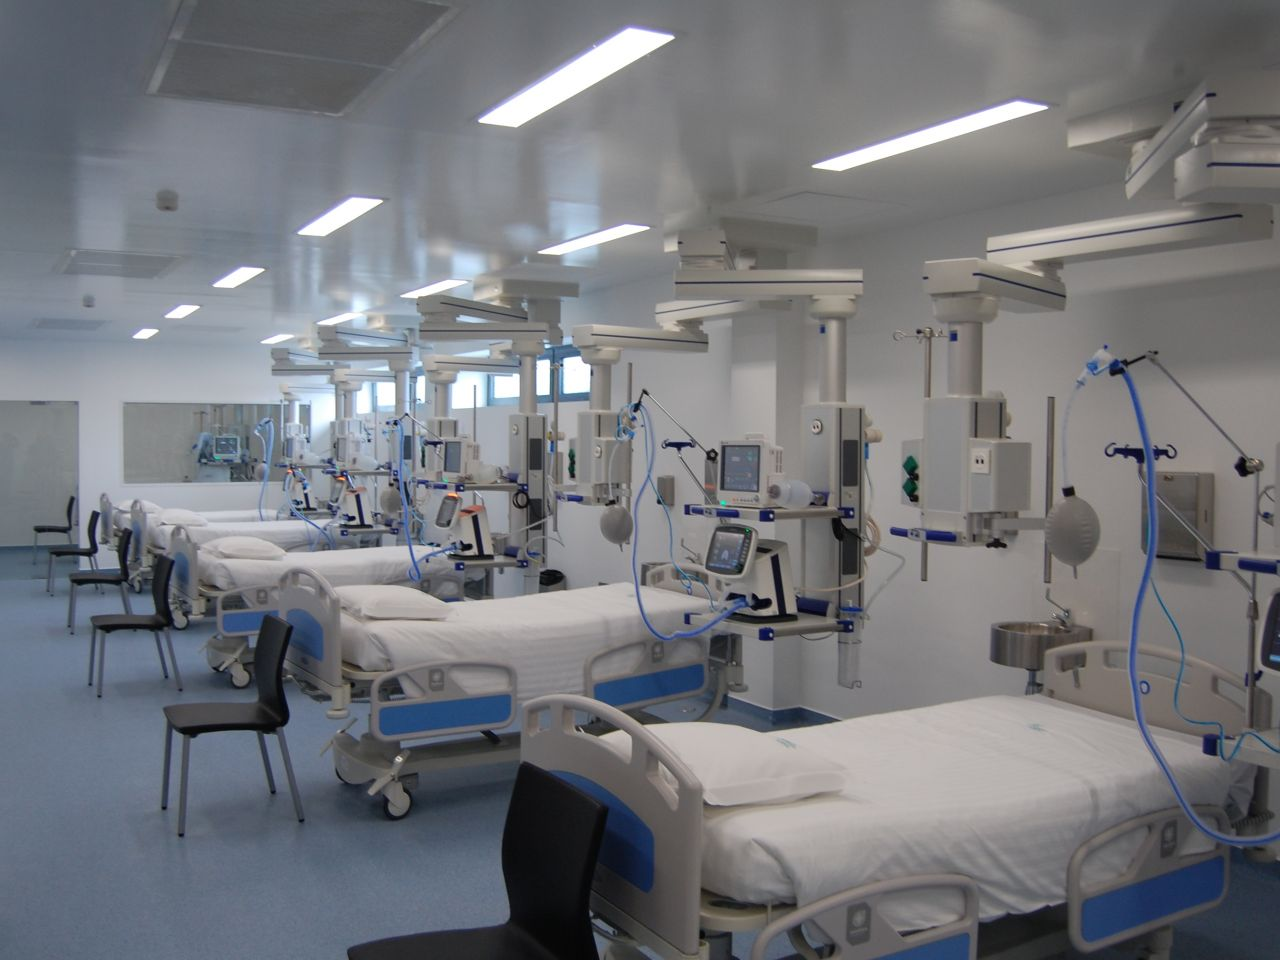 Santarém Hospital emergency room without hot water - The ...